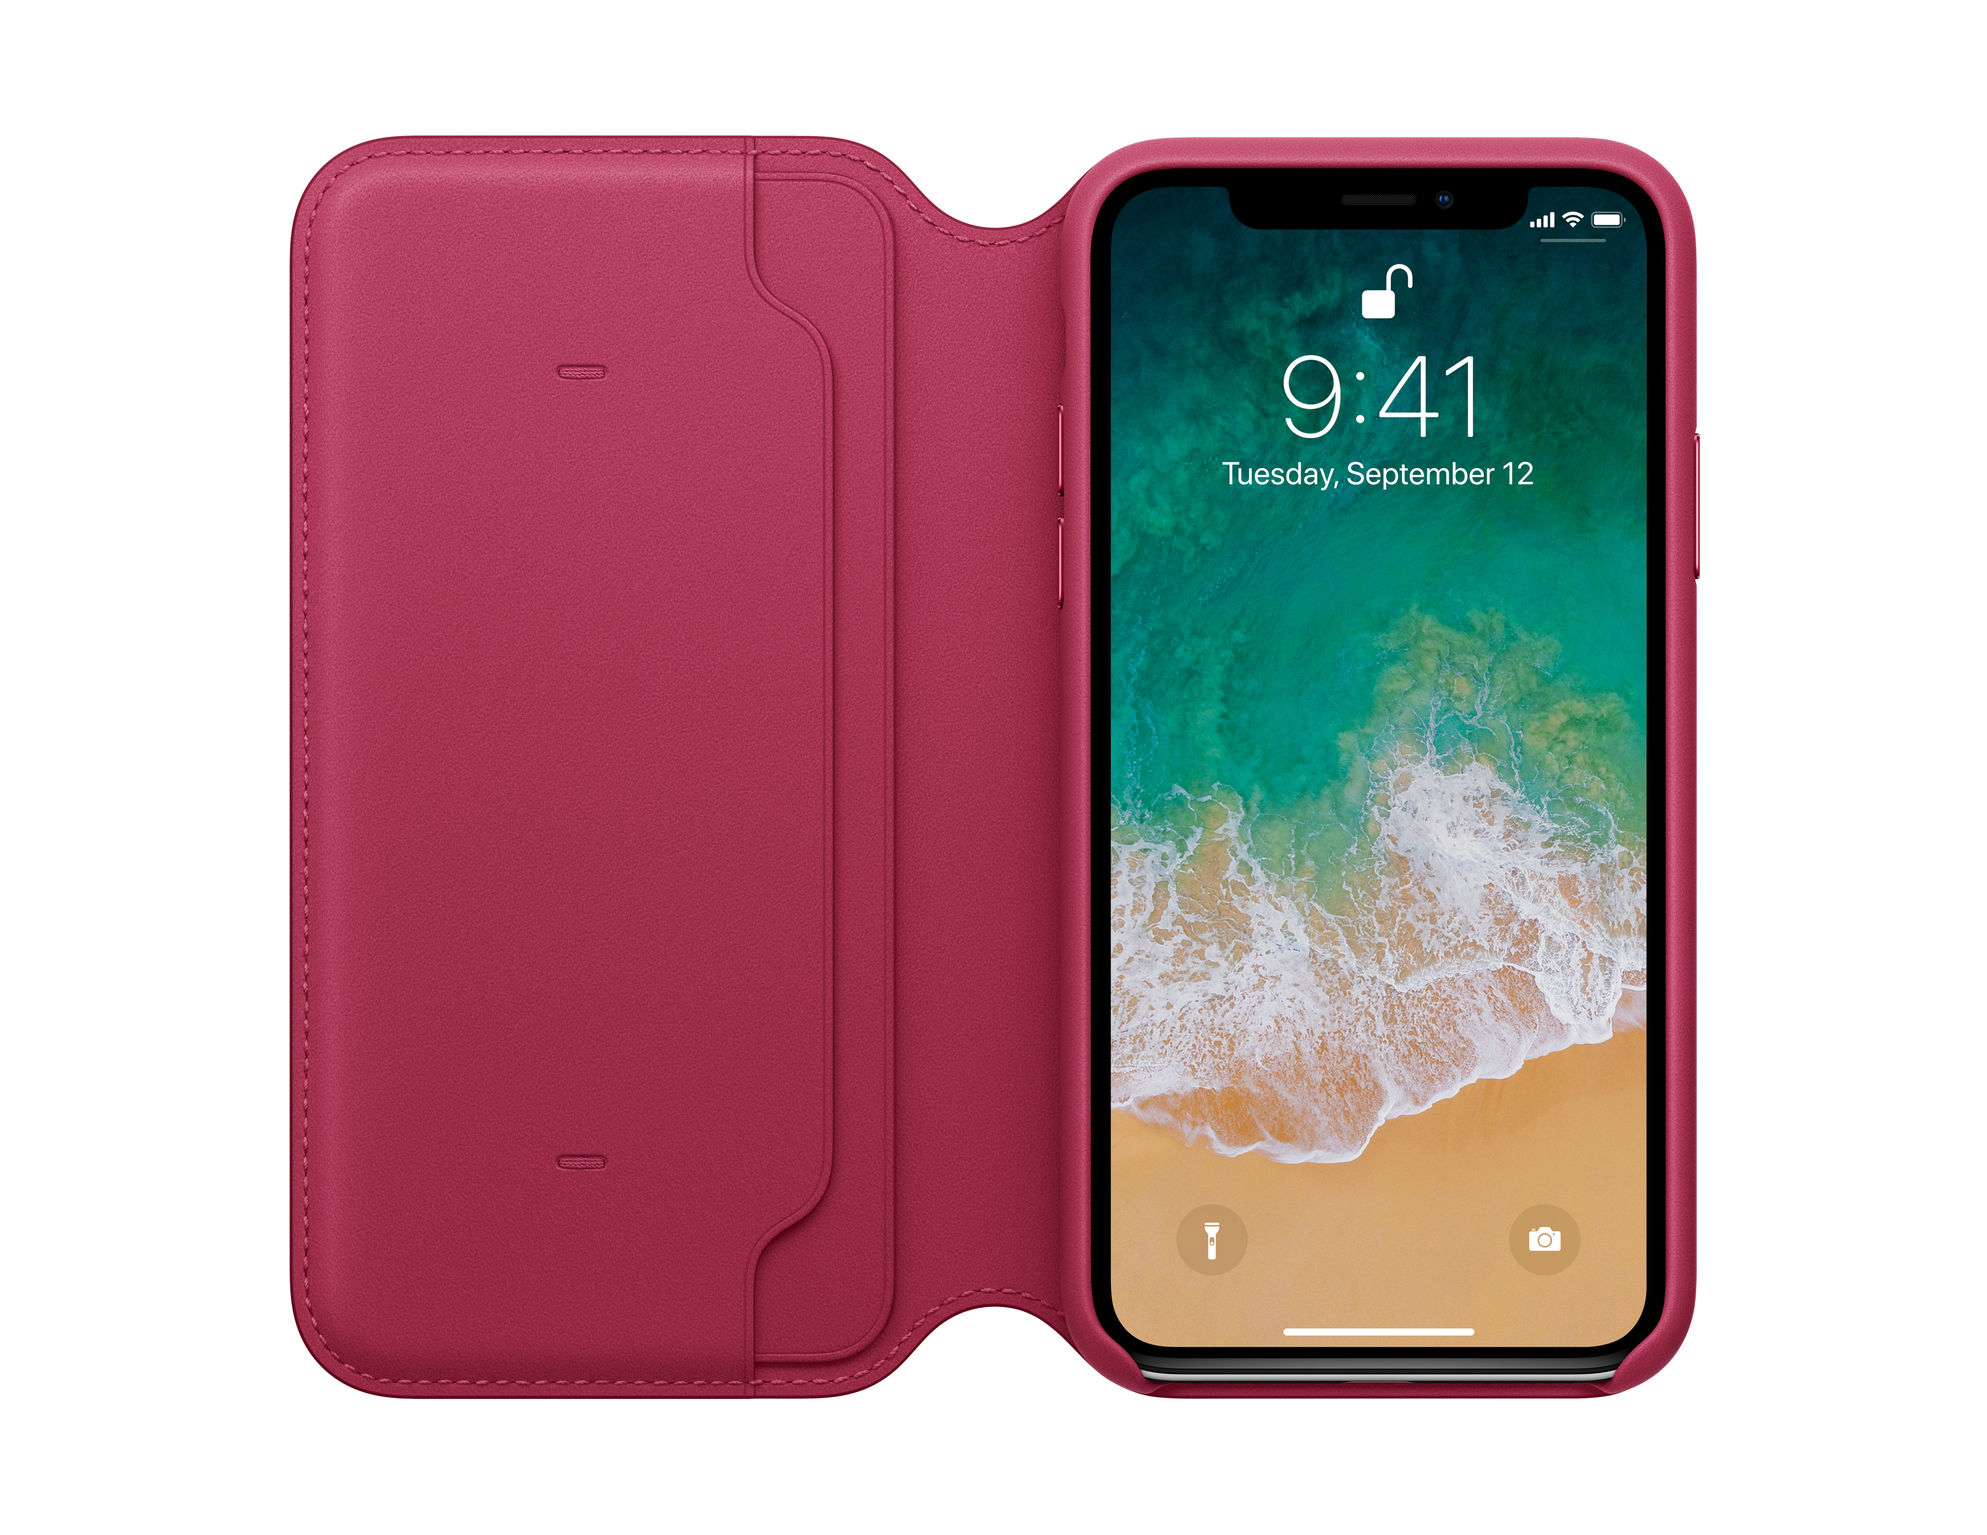 competitive price 899a0 27333 iPhone X Leather Folio | iF WORLD DESIGN GUIDE